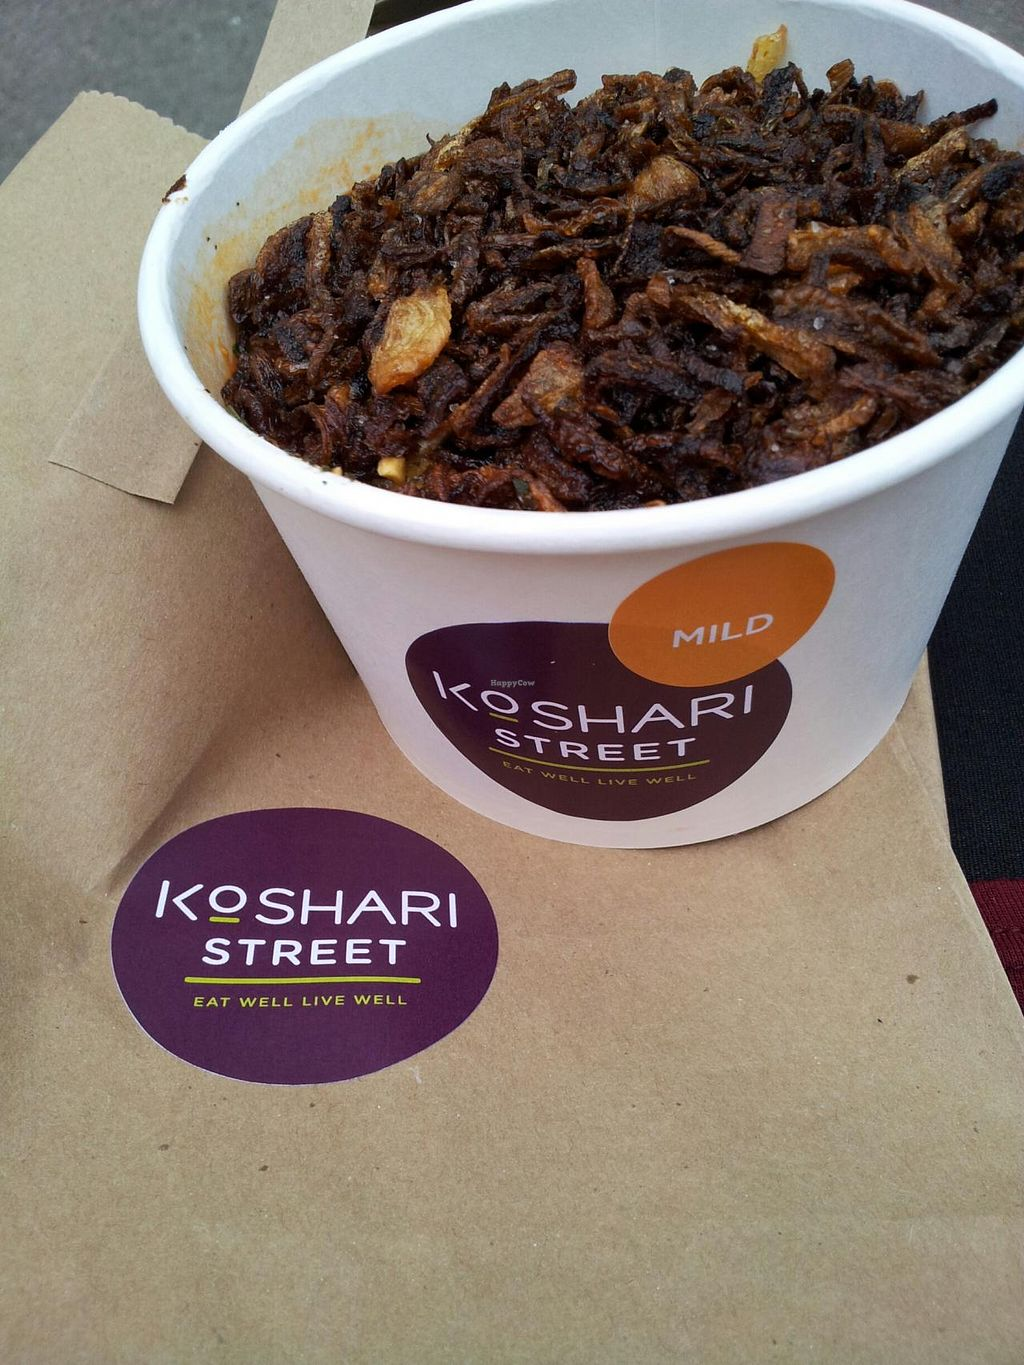 "Photo of Koshari Street  by <a href=""/members/profile/GiraffeGirl"">GiraffeGirl</a> <br/>Koshari with the fried onions on top <br/> May 2, 2014  - <a href='/contact/abuse/image/39033/69134'>Report</a>"